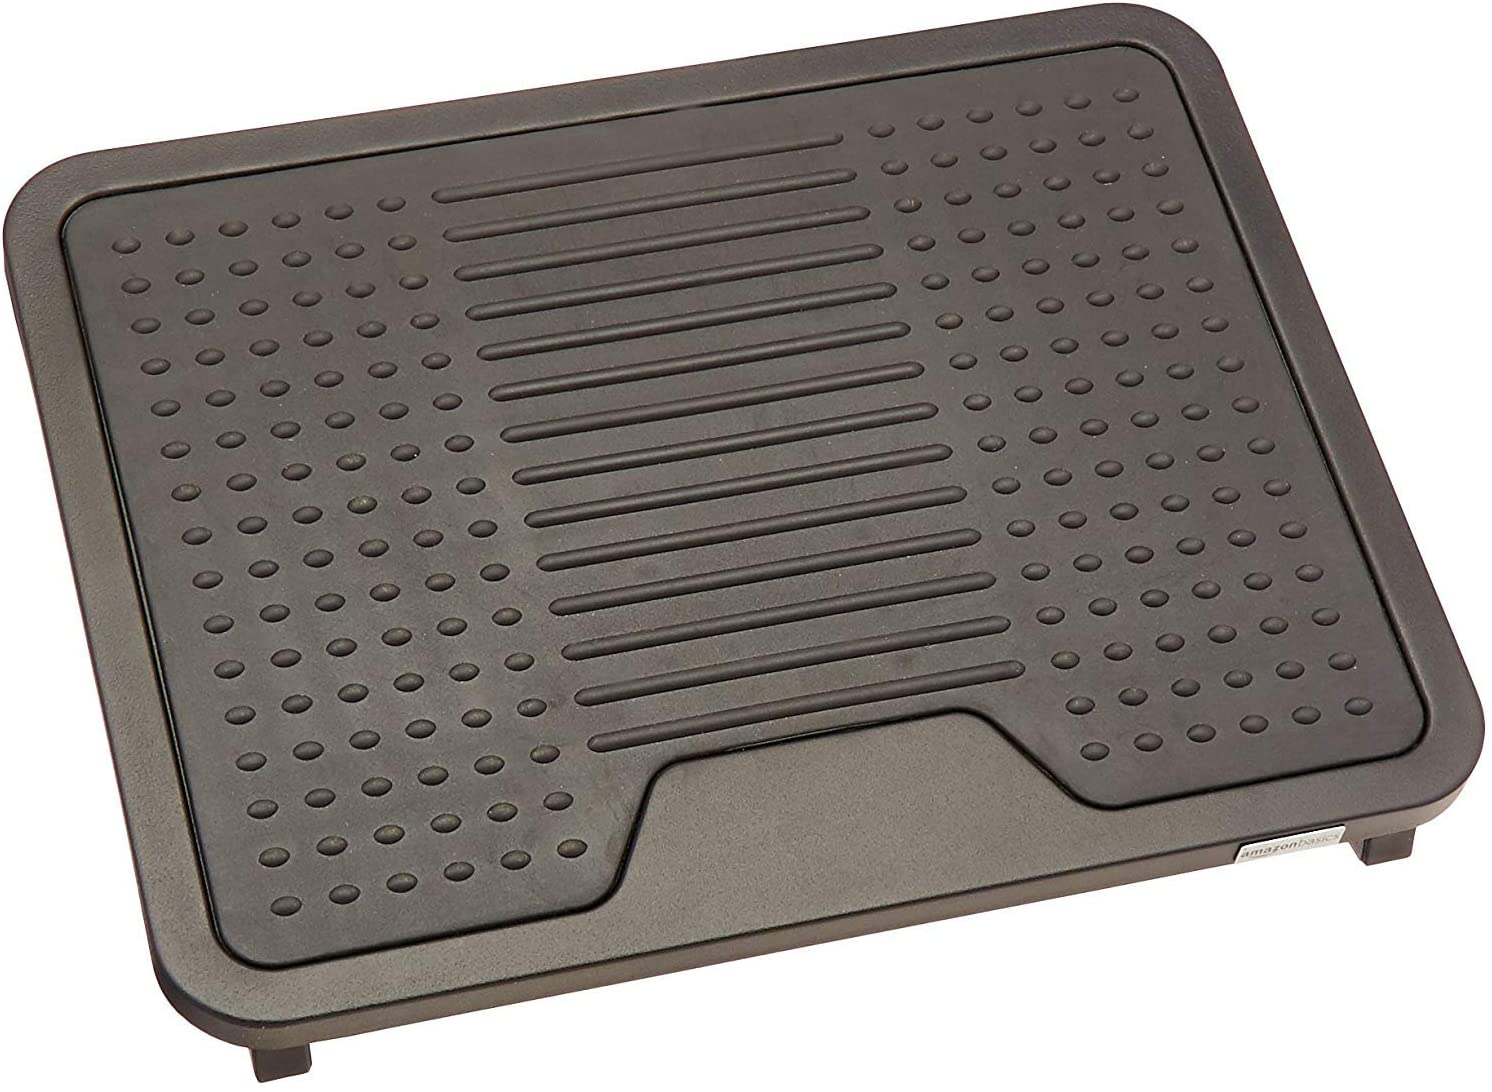 Basics Under Desk Foot Rest - Black : Office Products